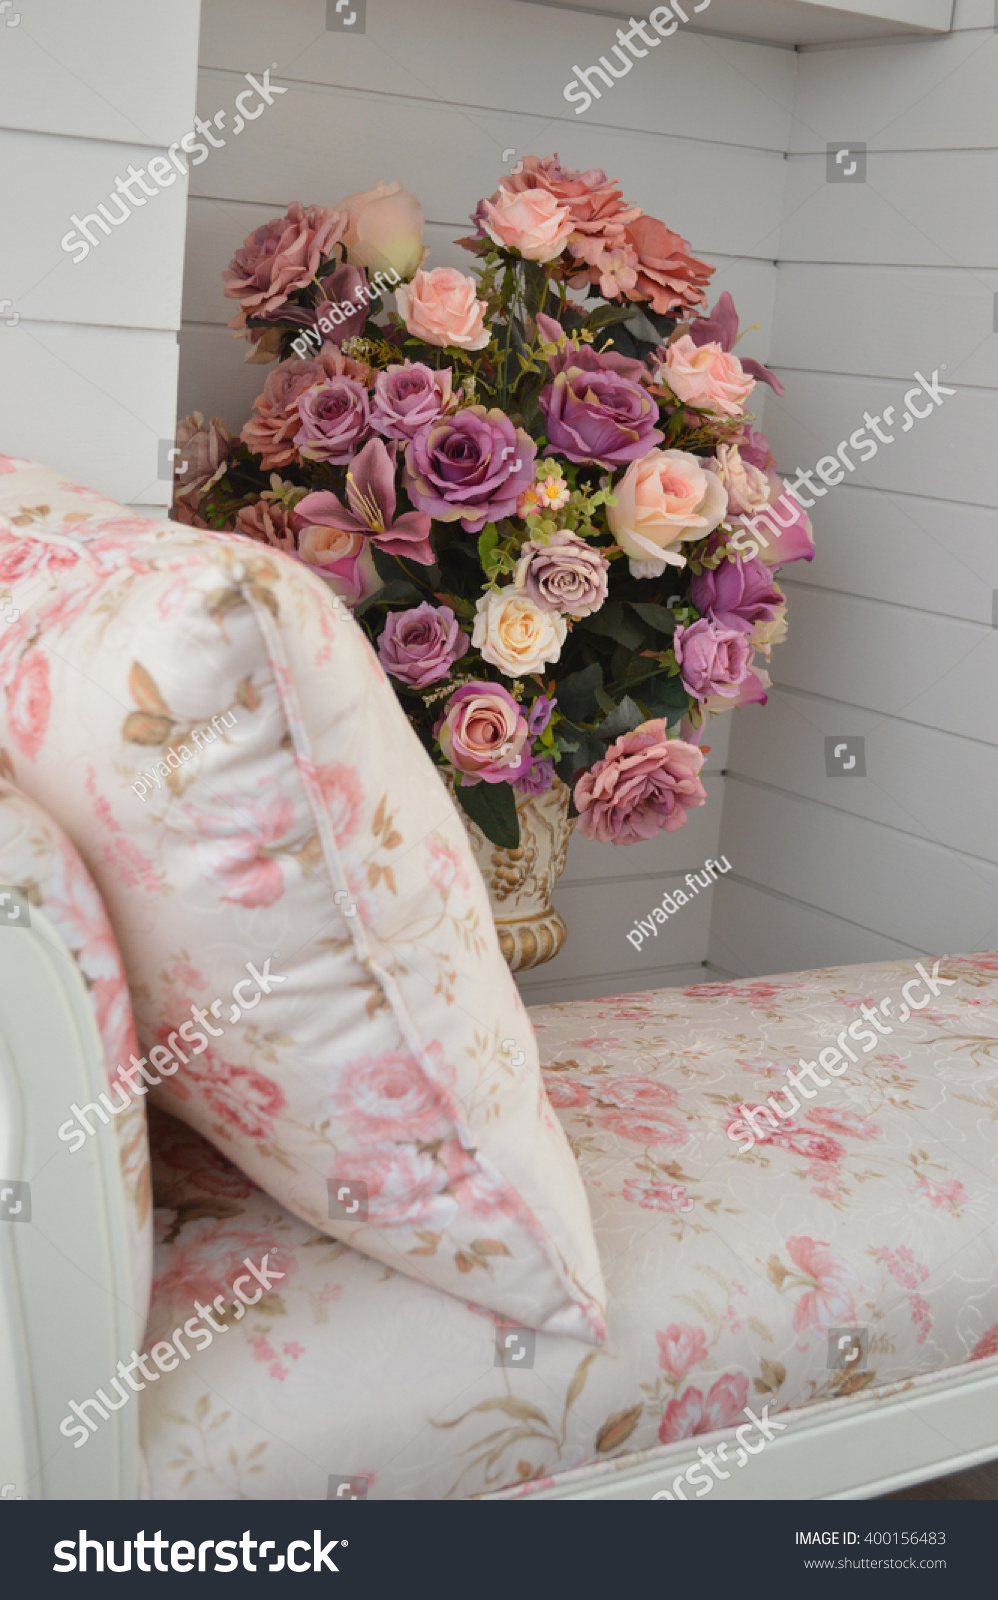 Big Flower Bouquet Roses Living Room Stock Photo 100 Legal